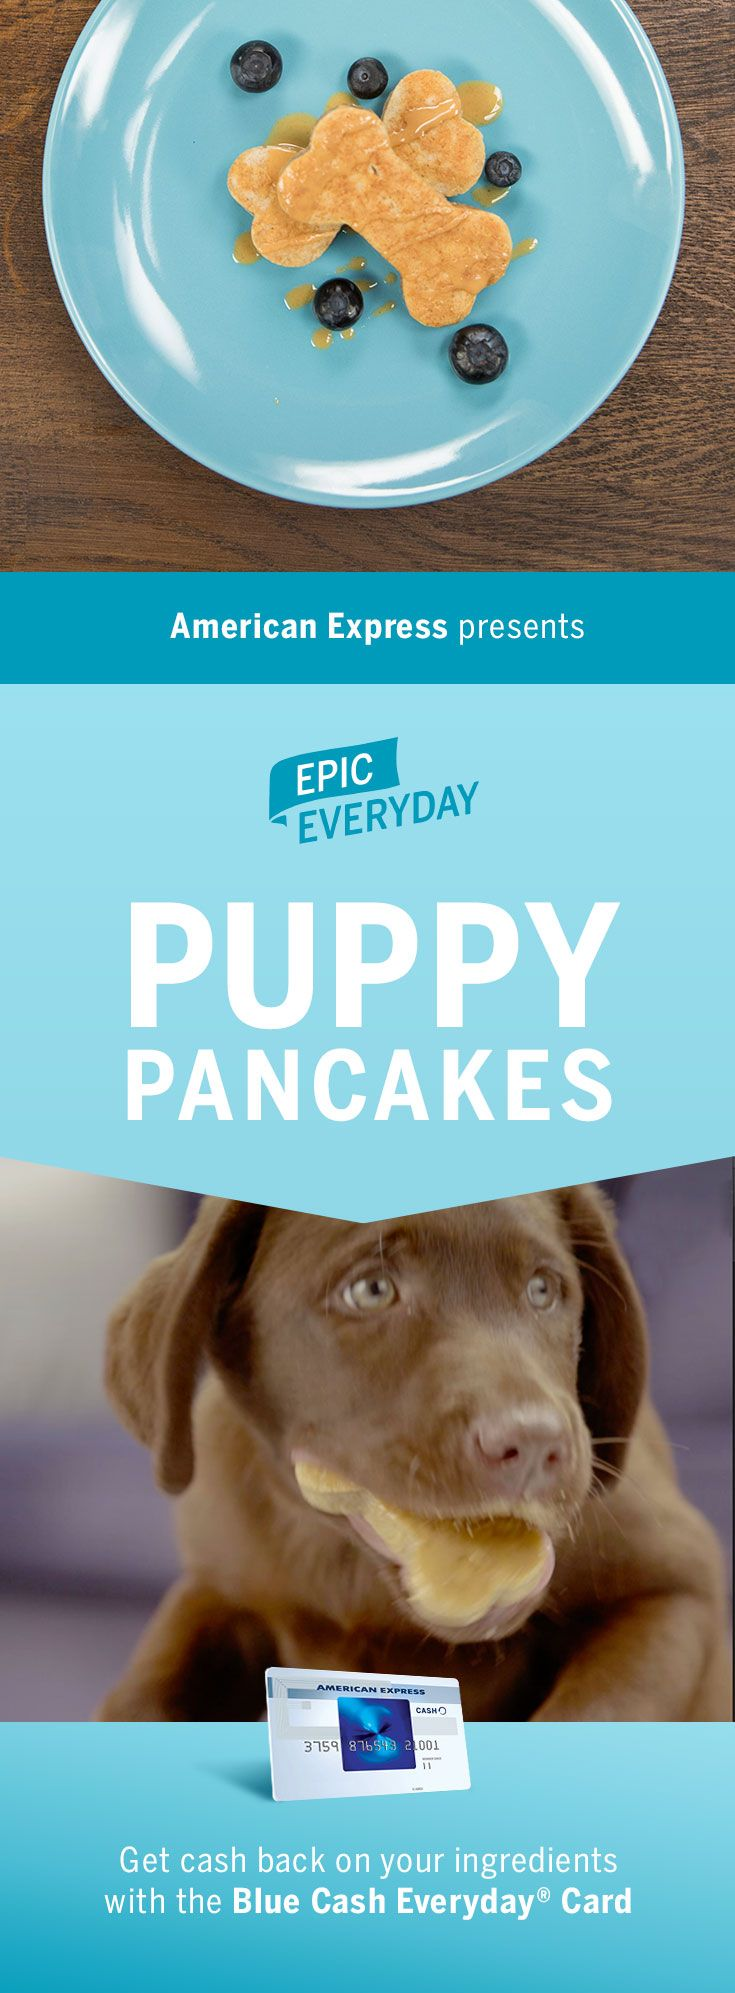 Make your puppy's breakfast epic! We partnered with Buzzfeed for these Puppy Pancakes! Making this homemade dog food is easy. Just place the batter in molds (shaped like dog bones) and drizzle with natural peanut butter and coconut oil. Shop for this recipe and get 3% cash back at US supermarkets on up to $6,000 in purchases with the Blue Cash Everyday Card from American Express. Terms apply. Learn more at americanexpress.com/epiceveryday. Click the pin to get the full recipe and more.